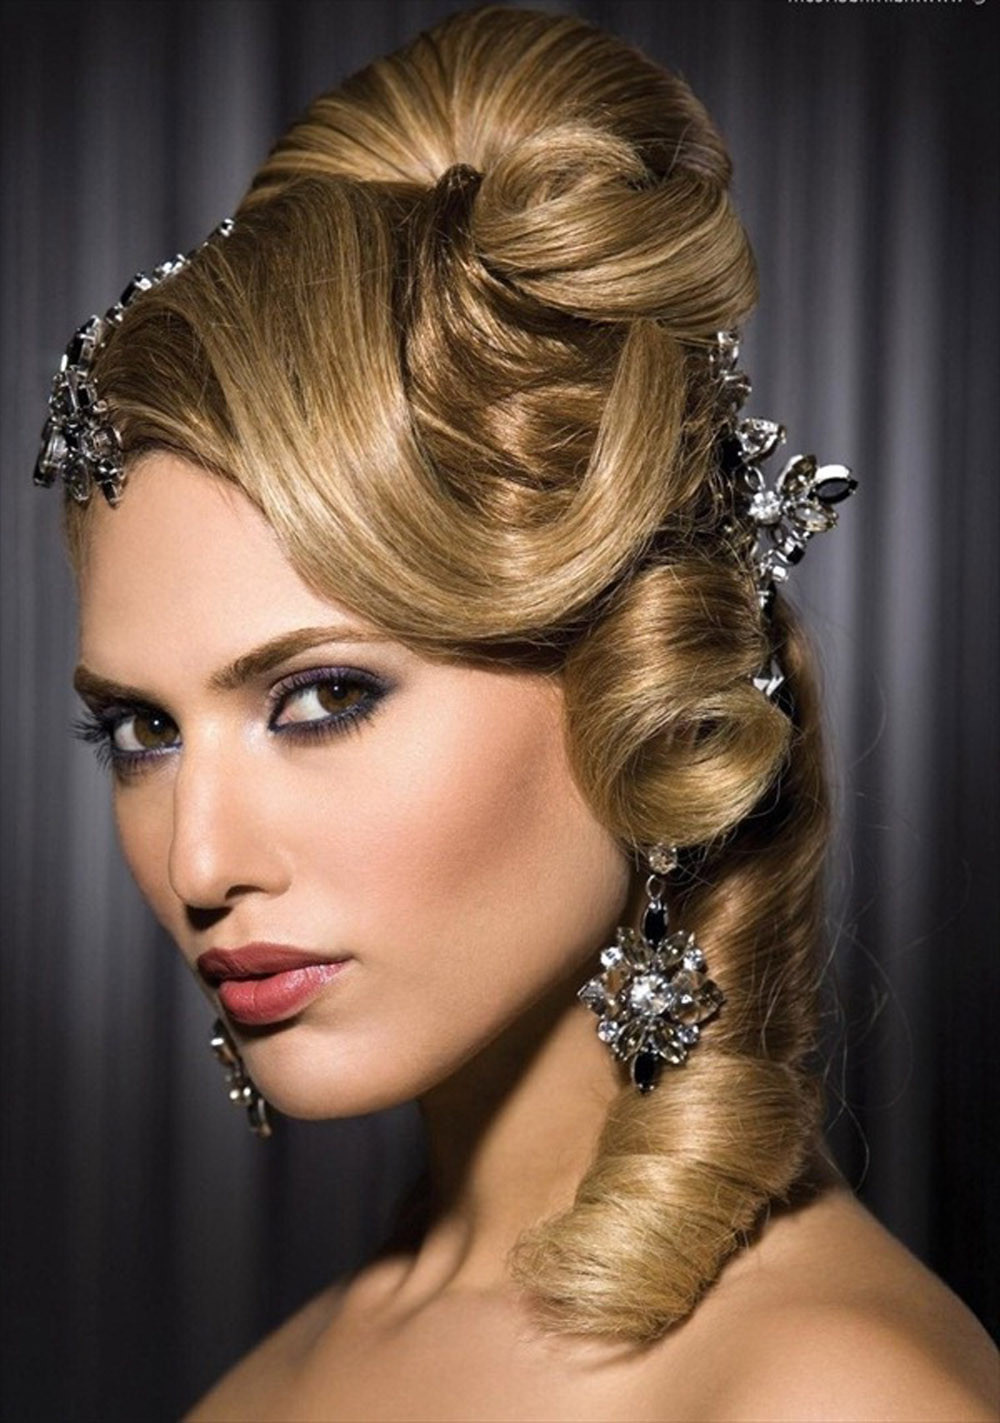 Pageant Hairstyles For Long Hair  20 DOs & DONTs Prom HairStyles For Long Hair – Prom